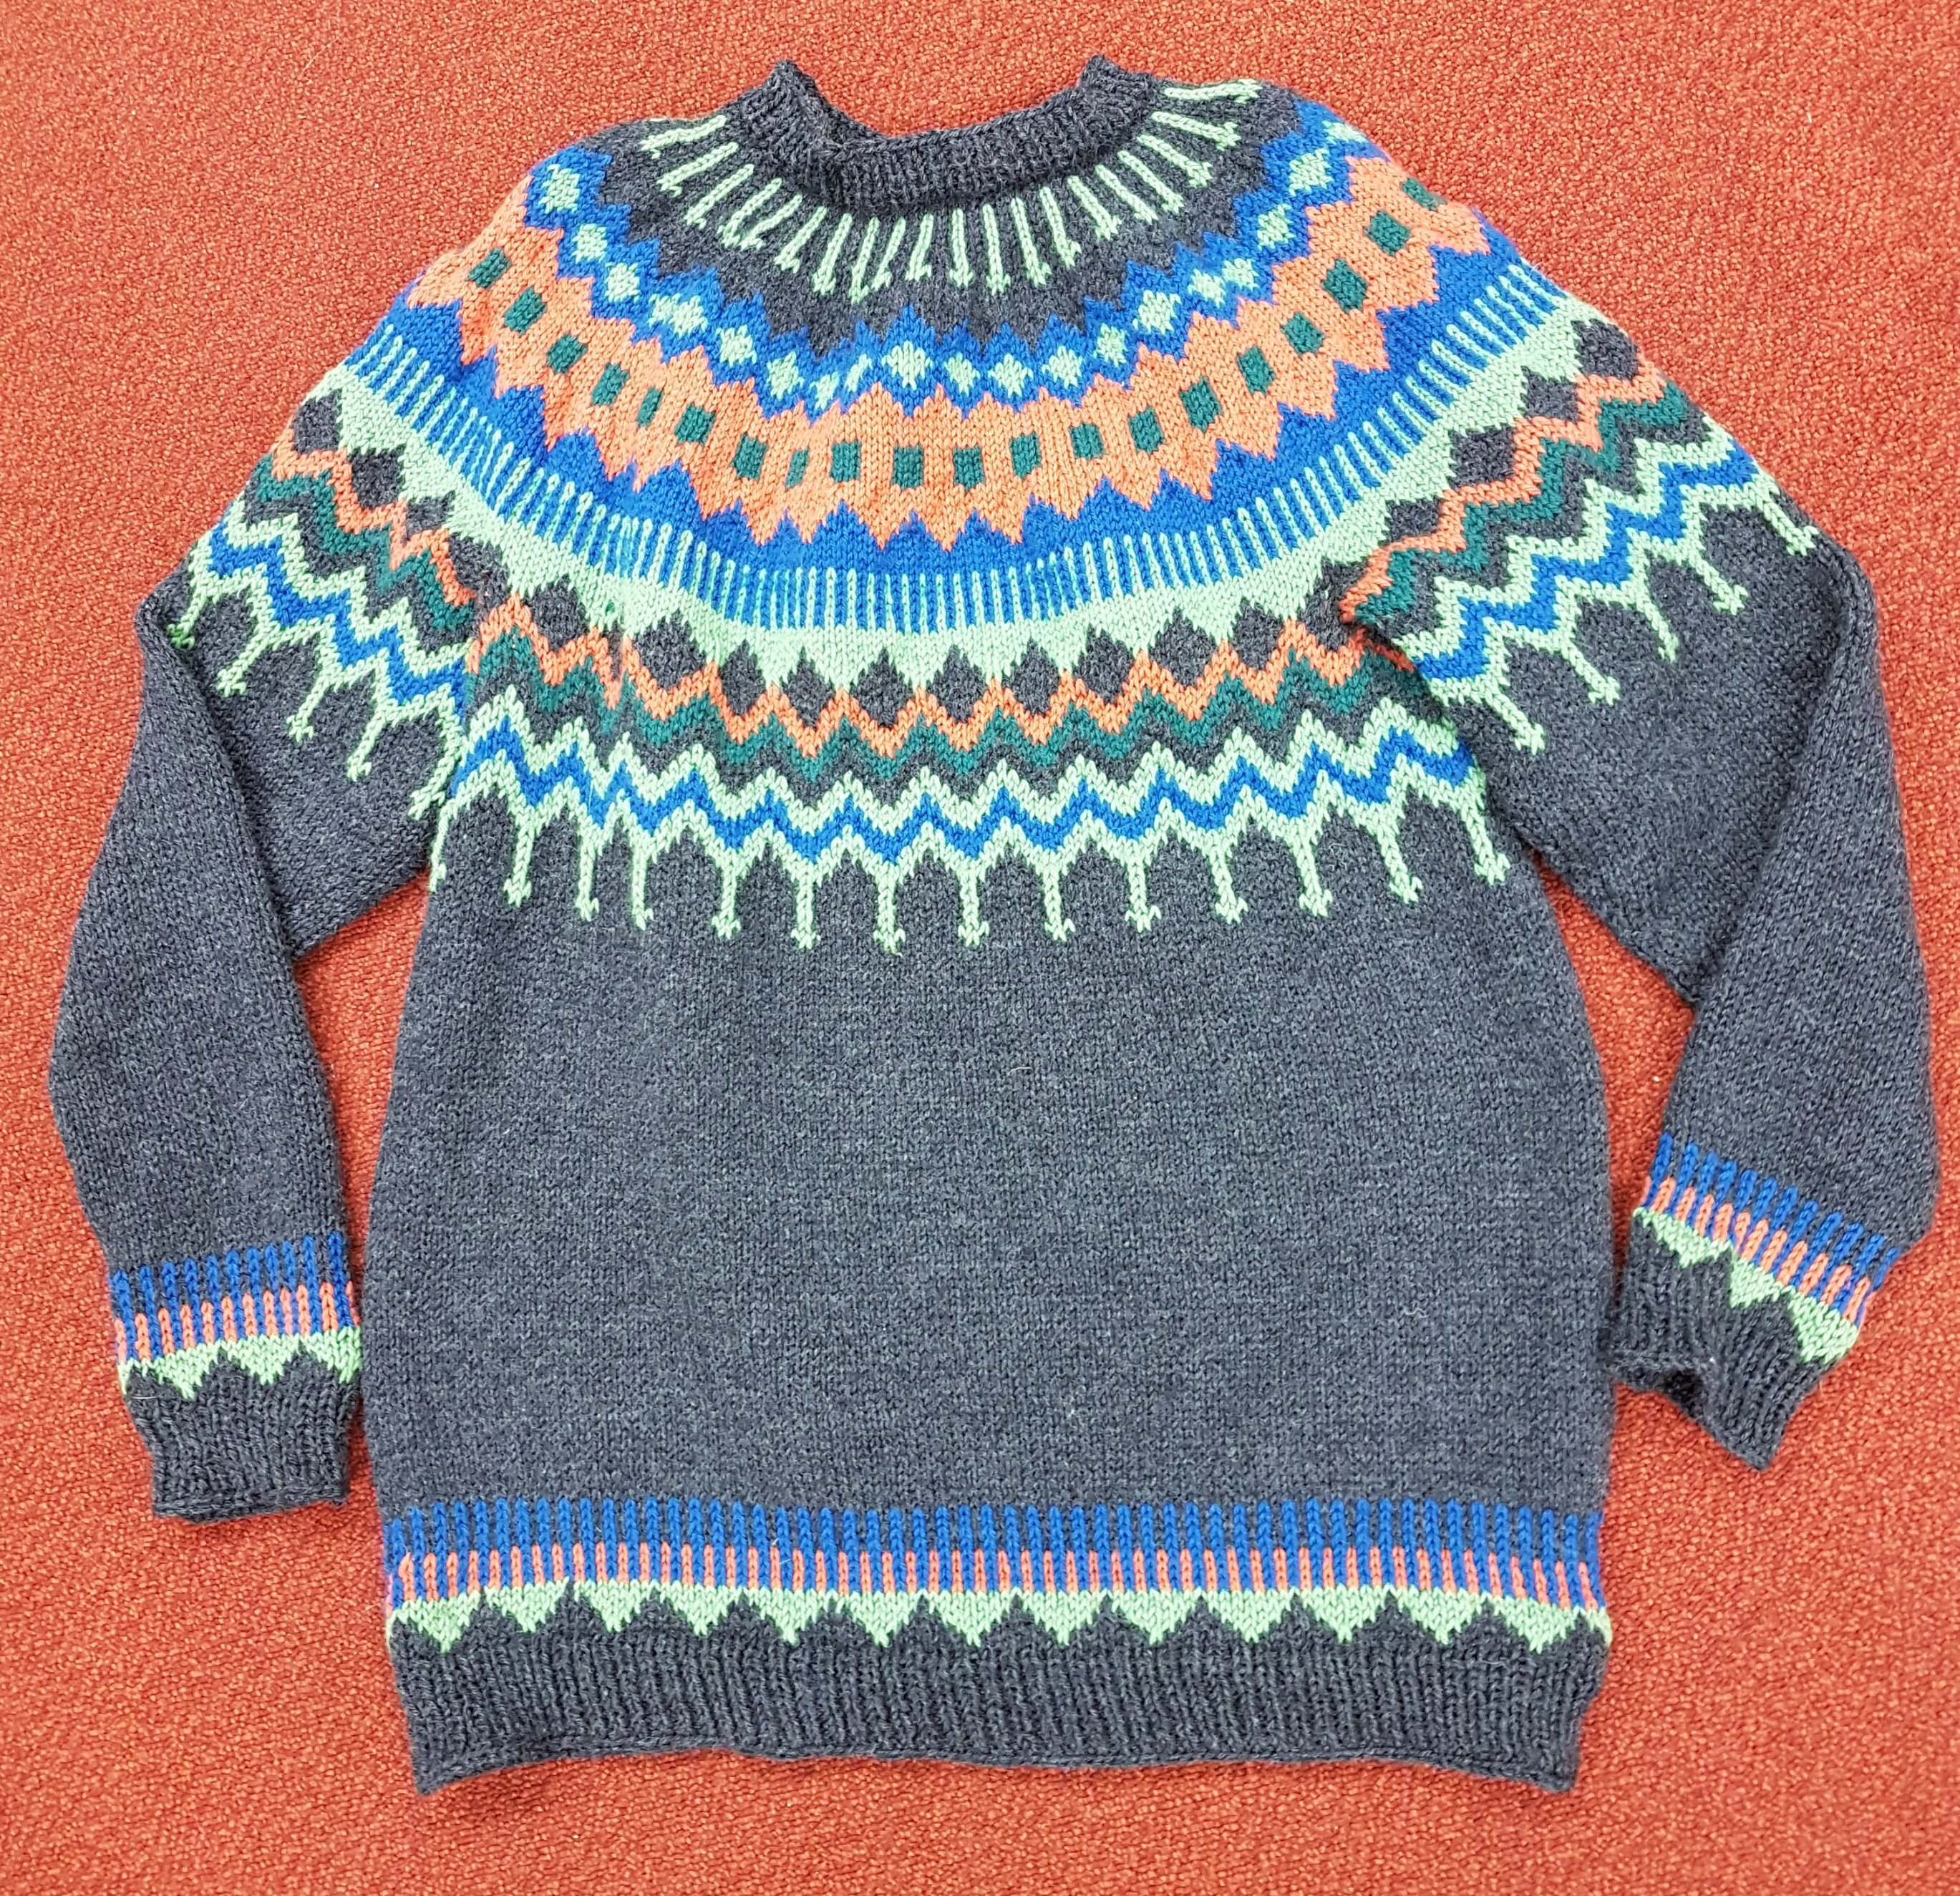 Dad's sweater